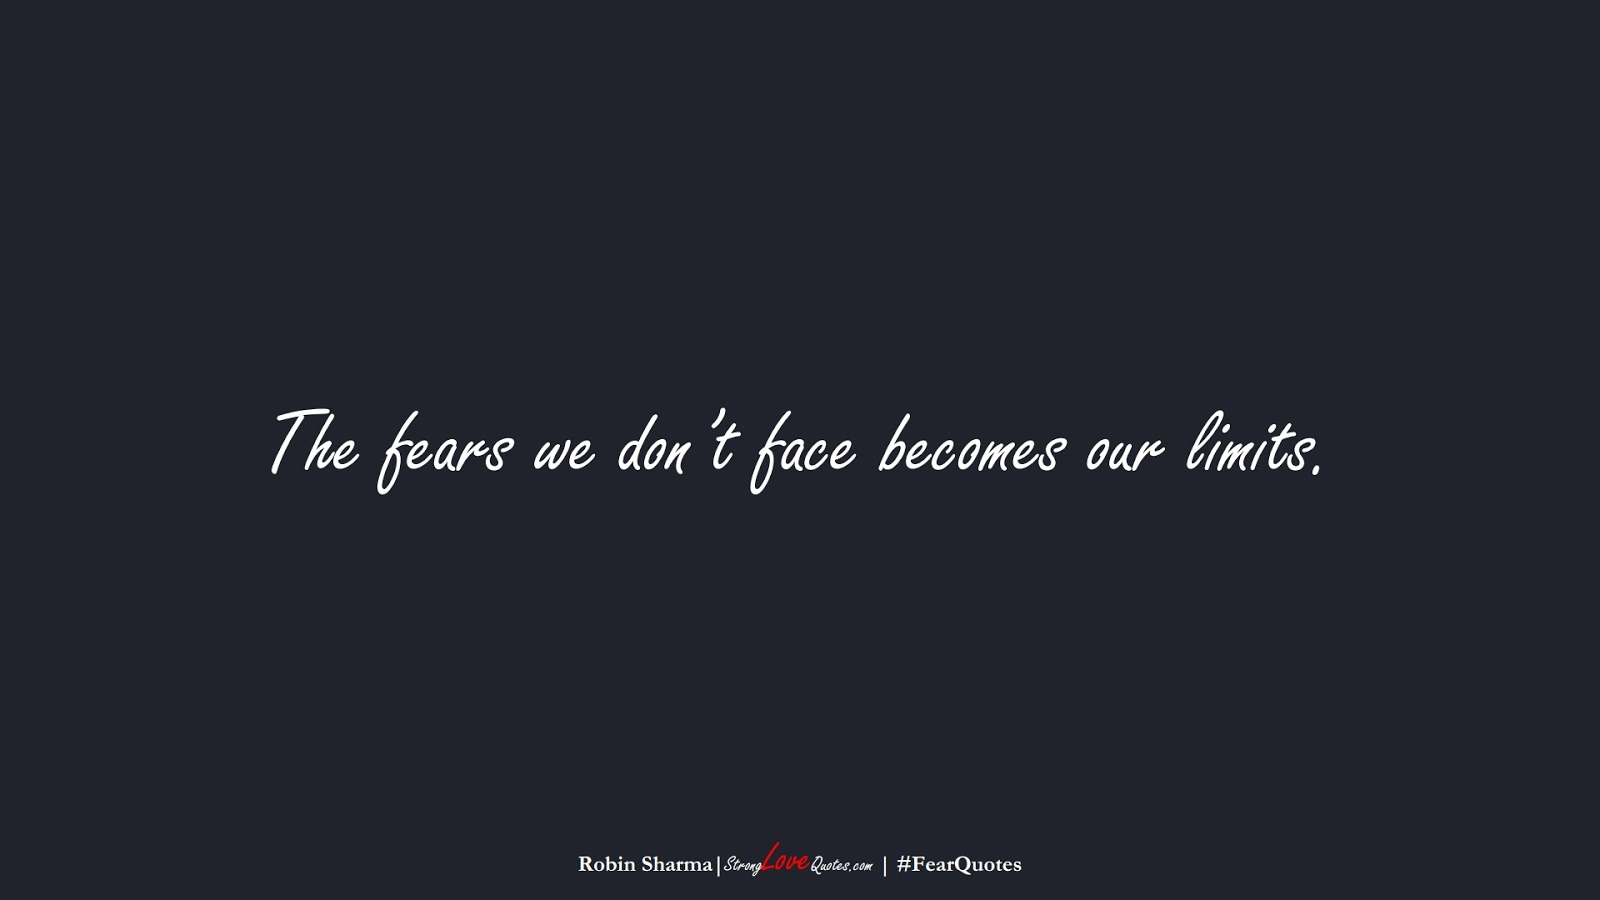 The fears we don't face becomes our limits. (Robin Sharma);  #FearQuotes